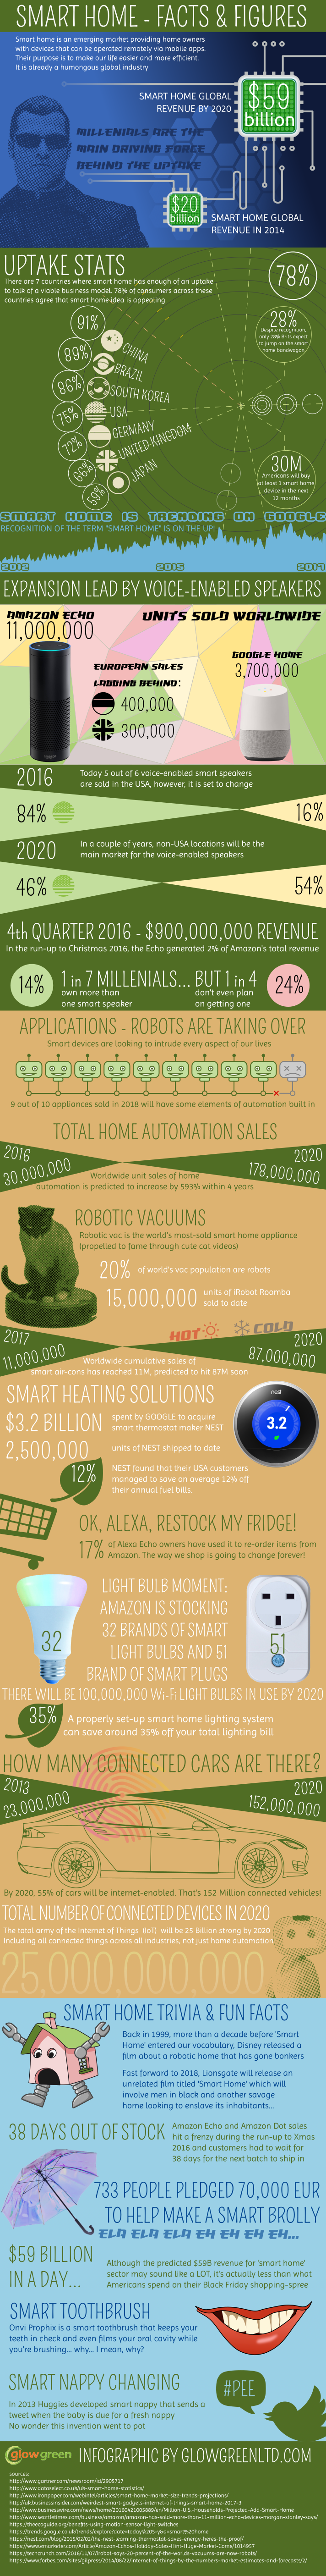 Smart Home Facts